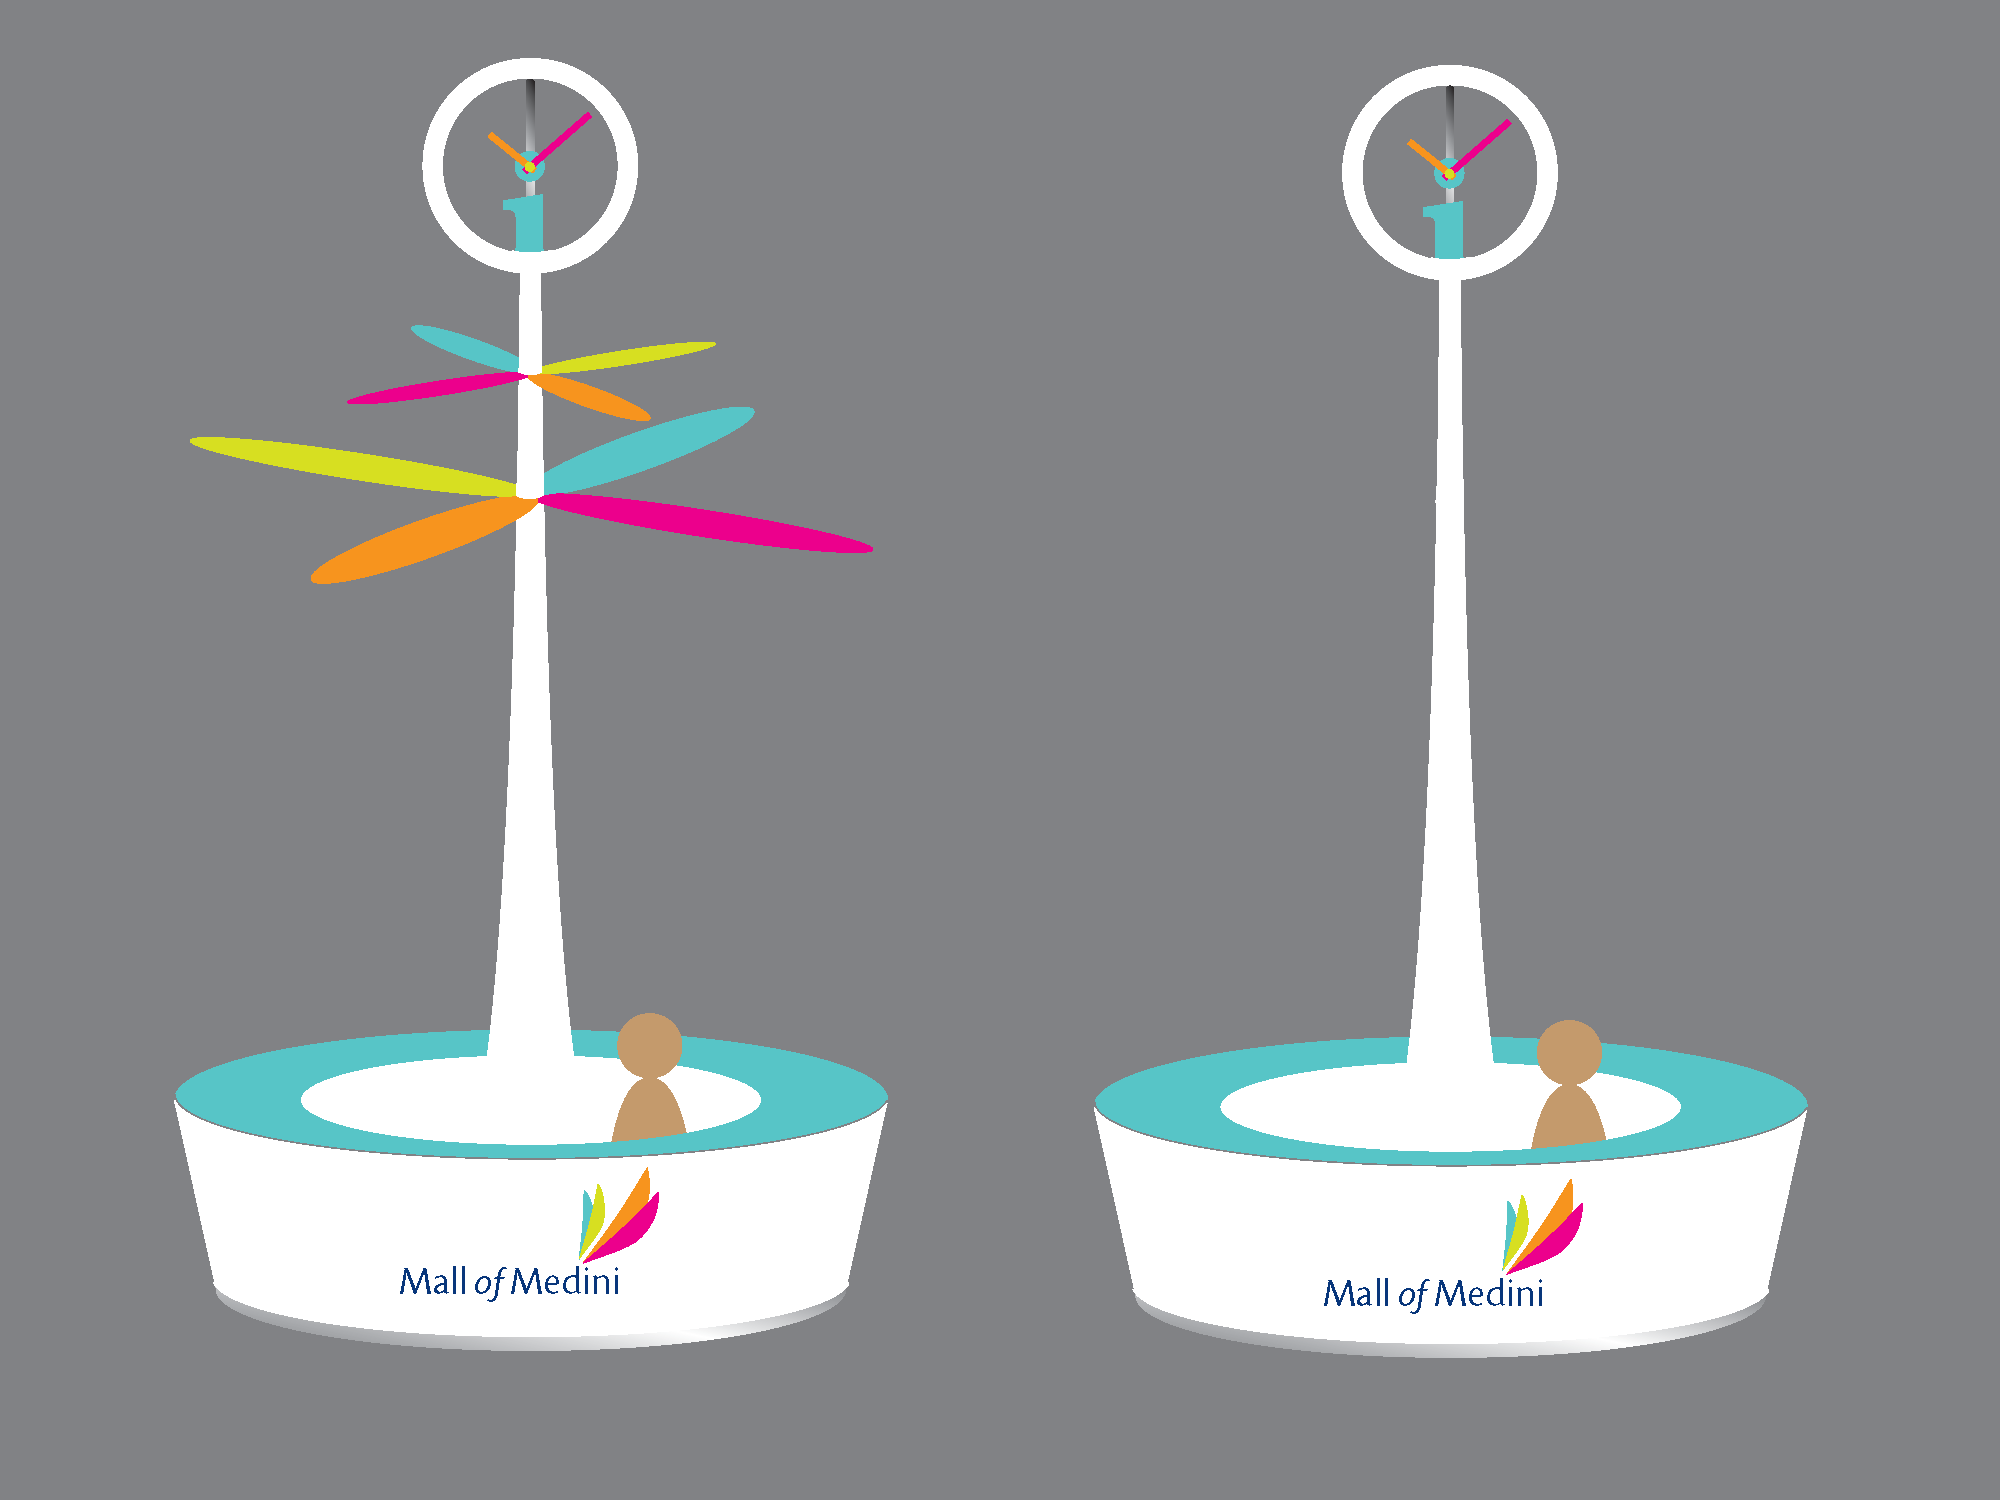 The original design with two propeller fans and a clock which takes on the Mall's visual identity was not executed due to budget constraints.